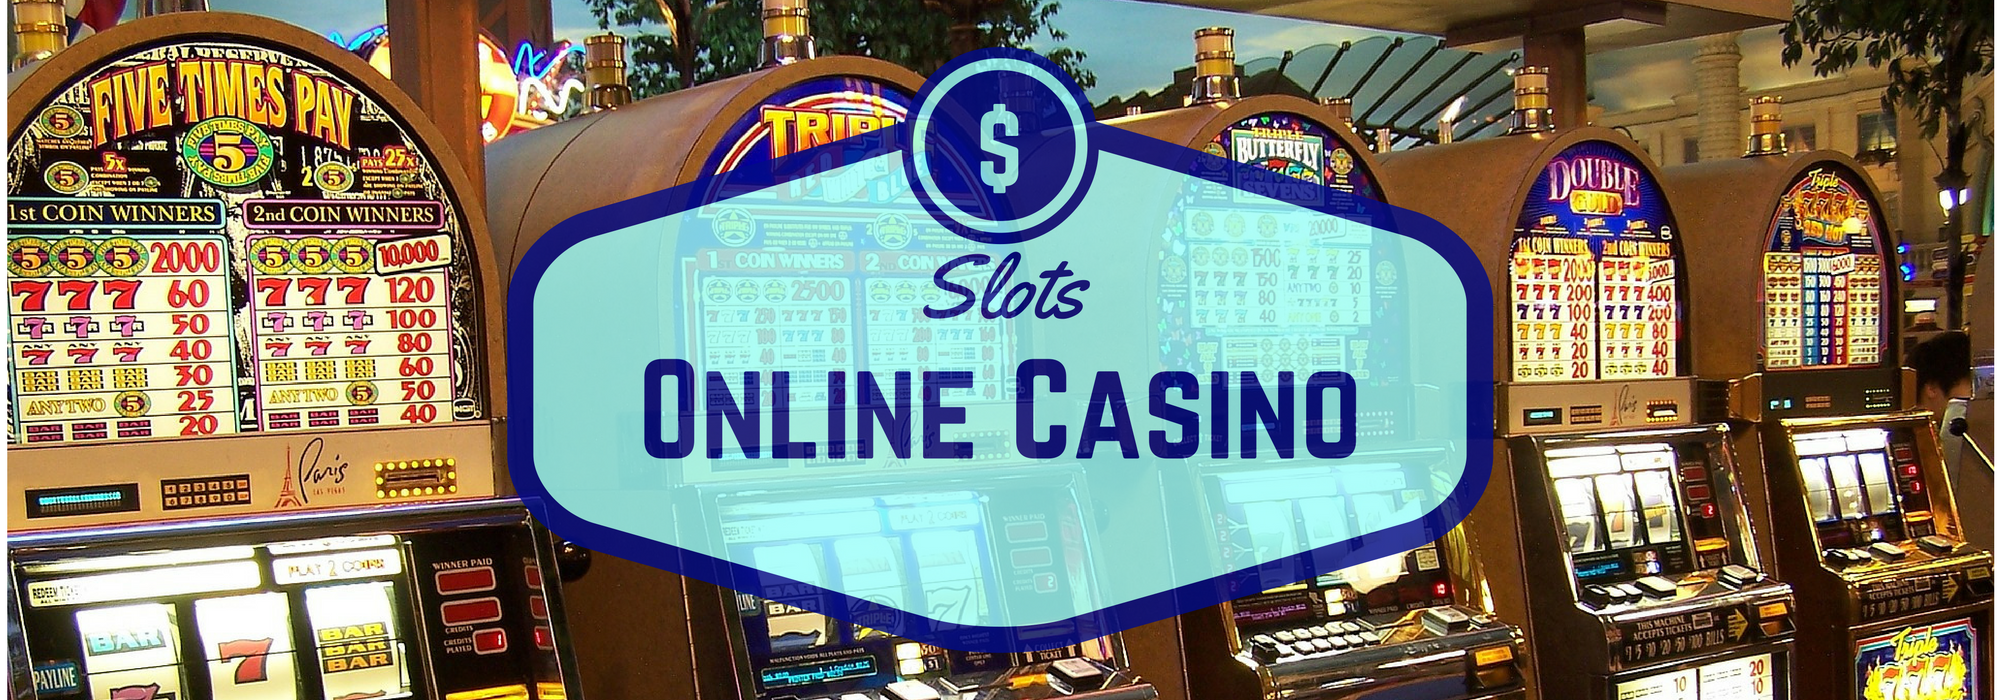 slots casino online casino slot online english